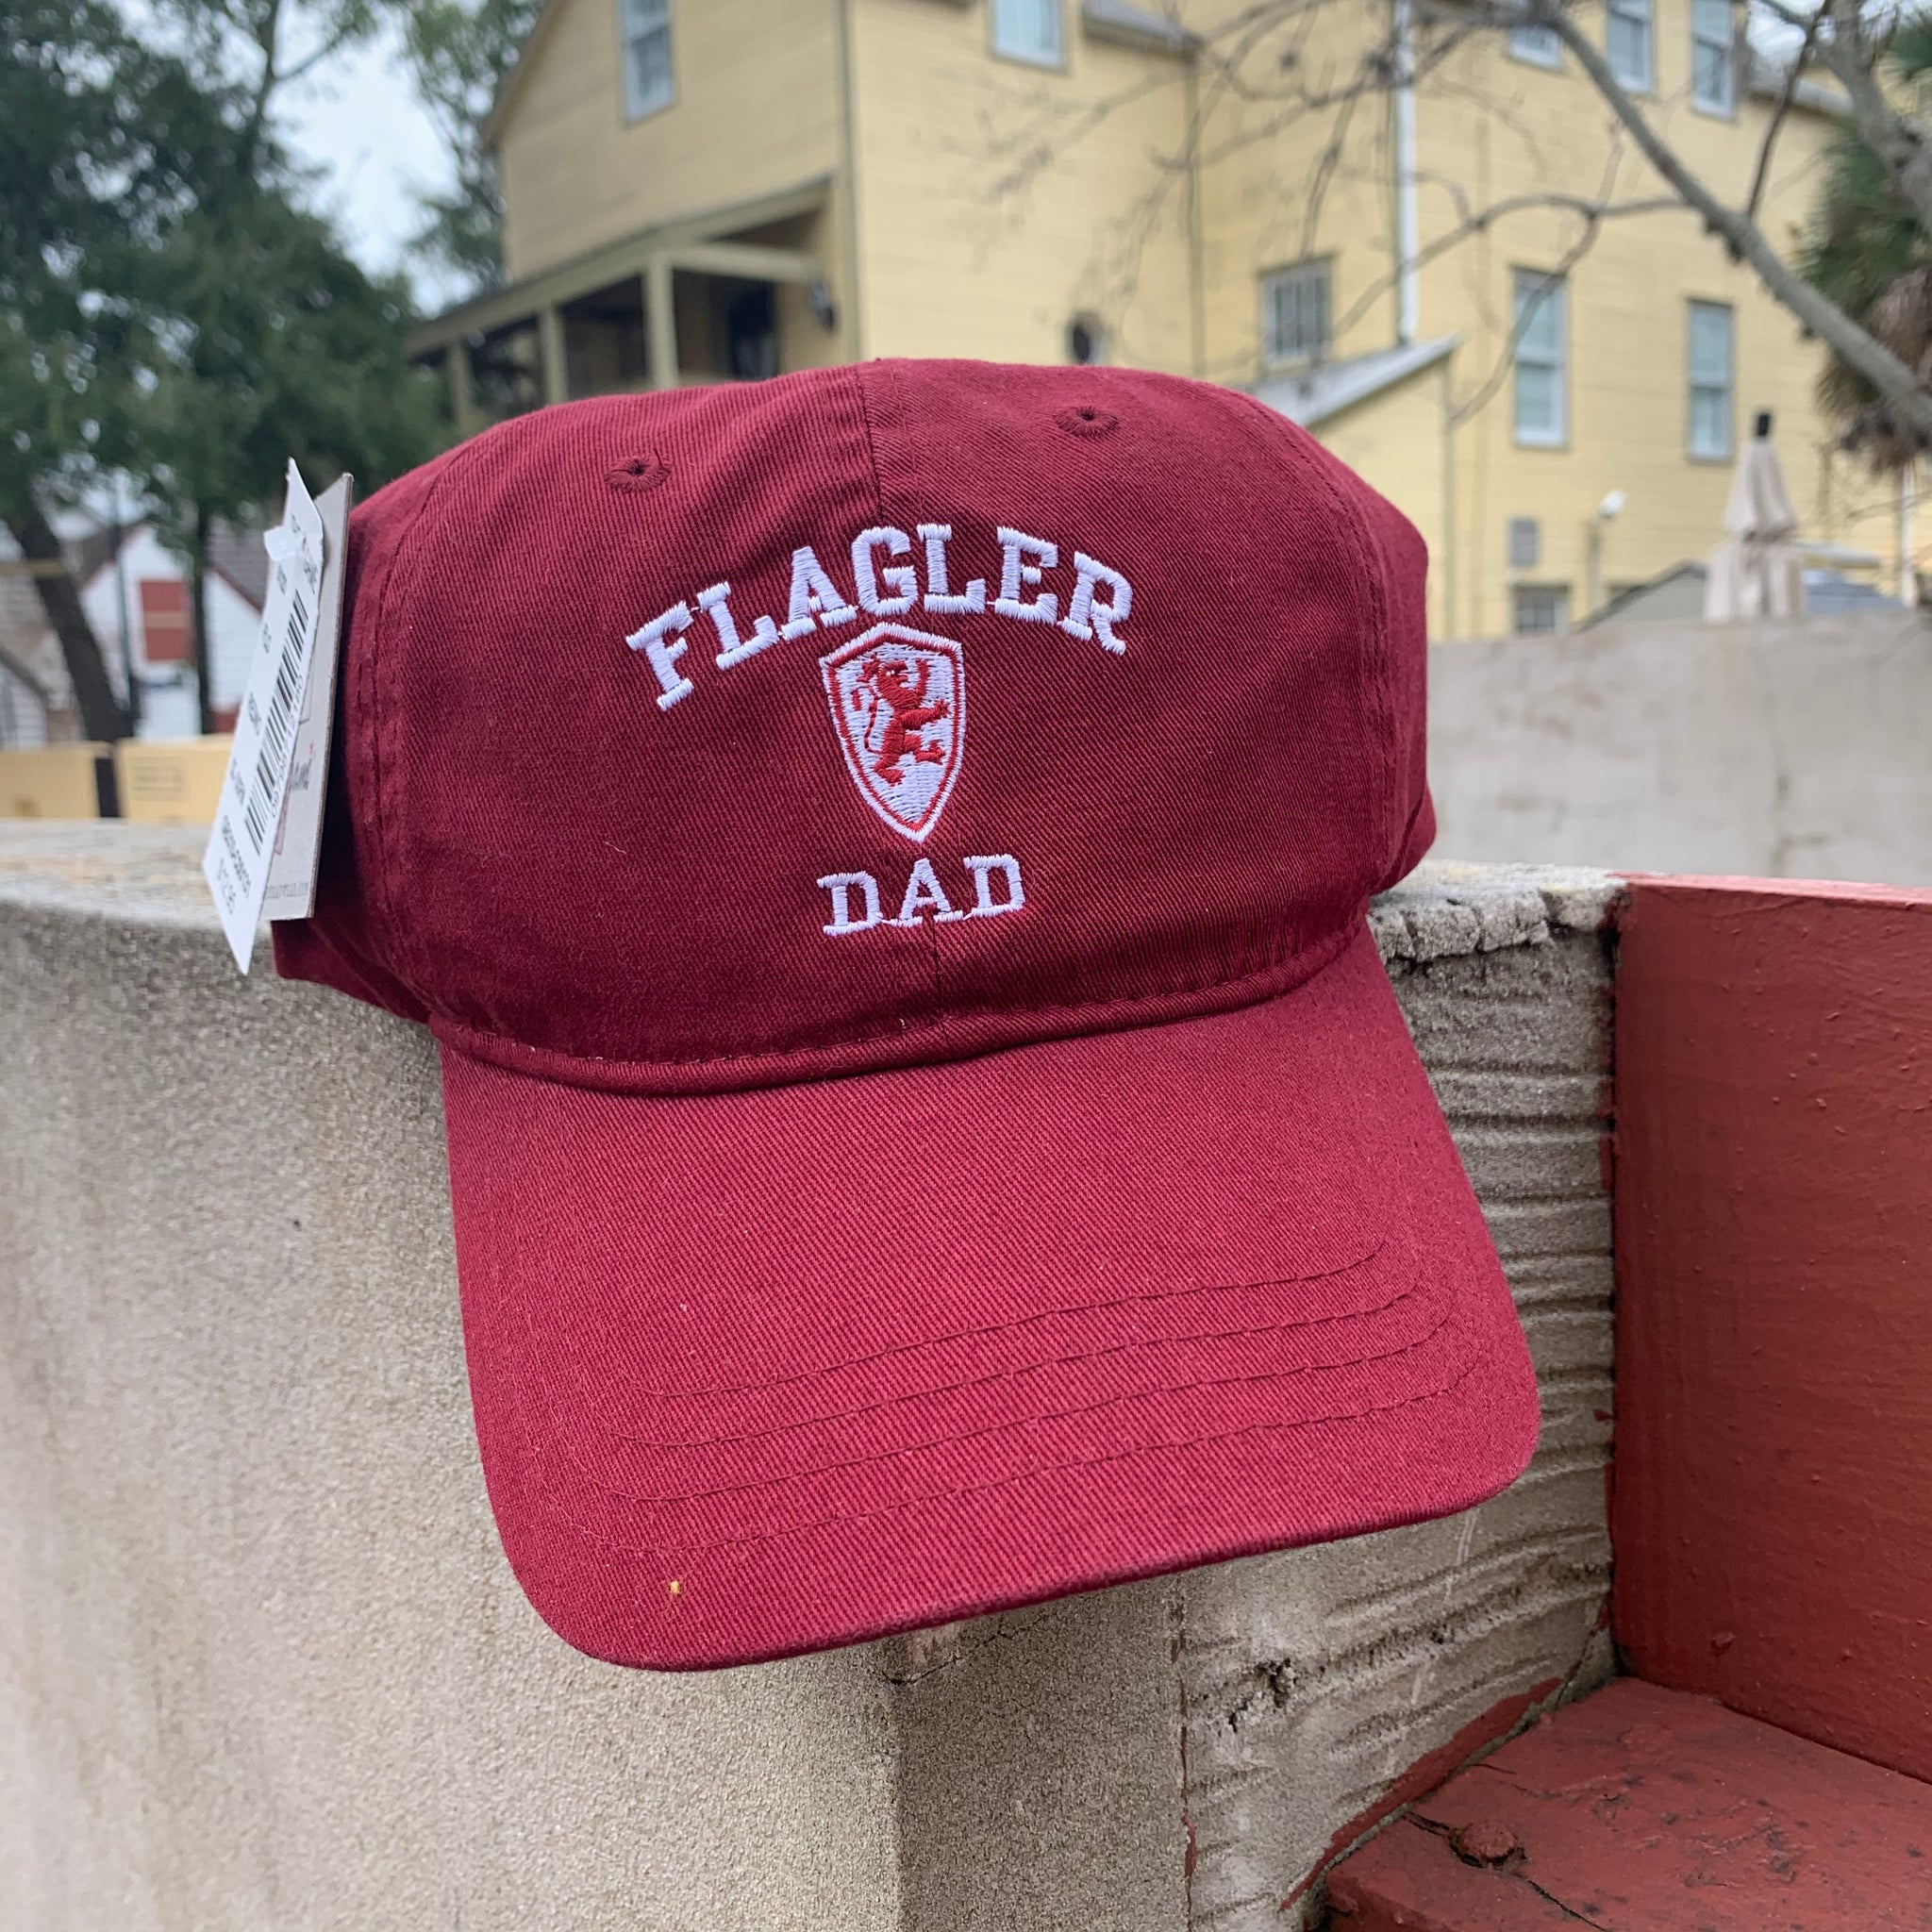 red hat with flagler, a lion shield, and dad embroidered in white in middle